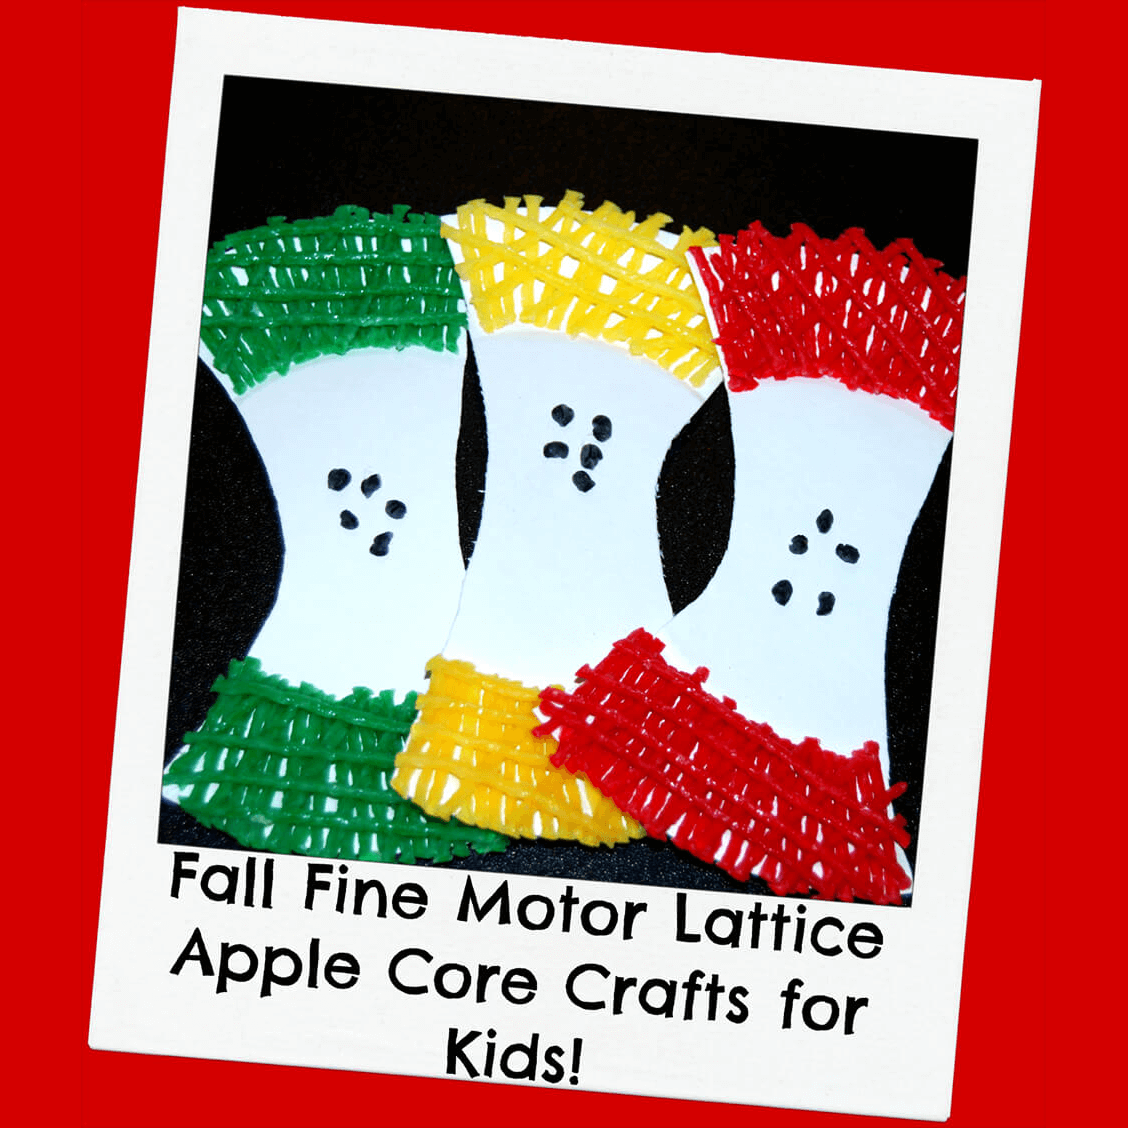 Lattice Apple Core Crafts